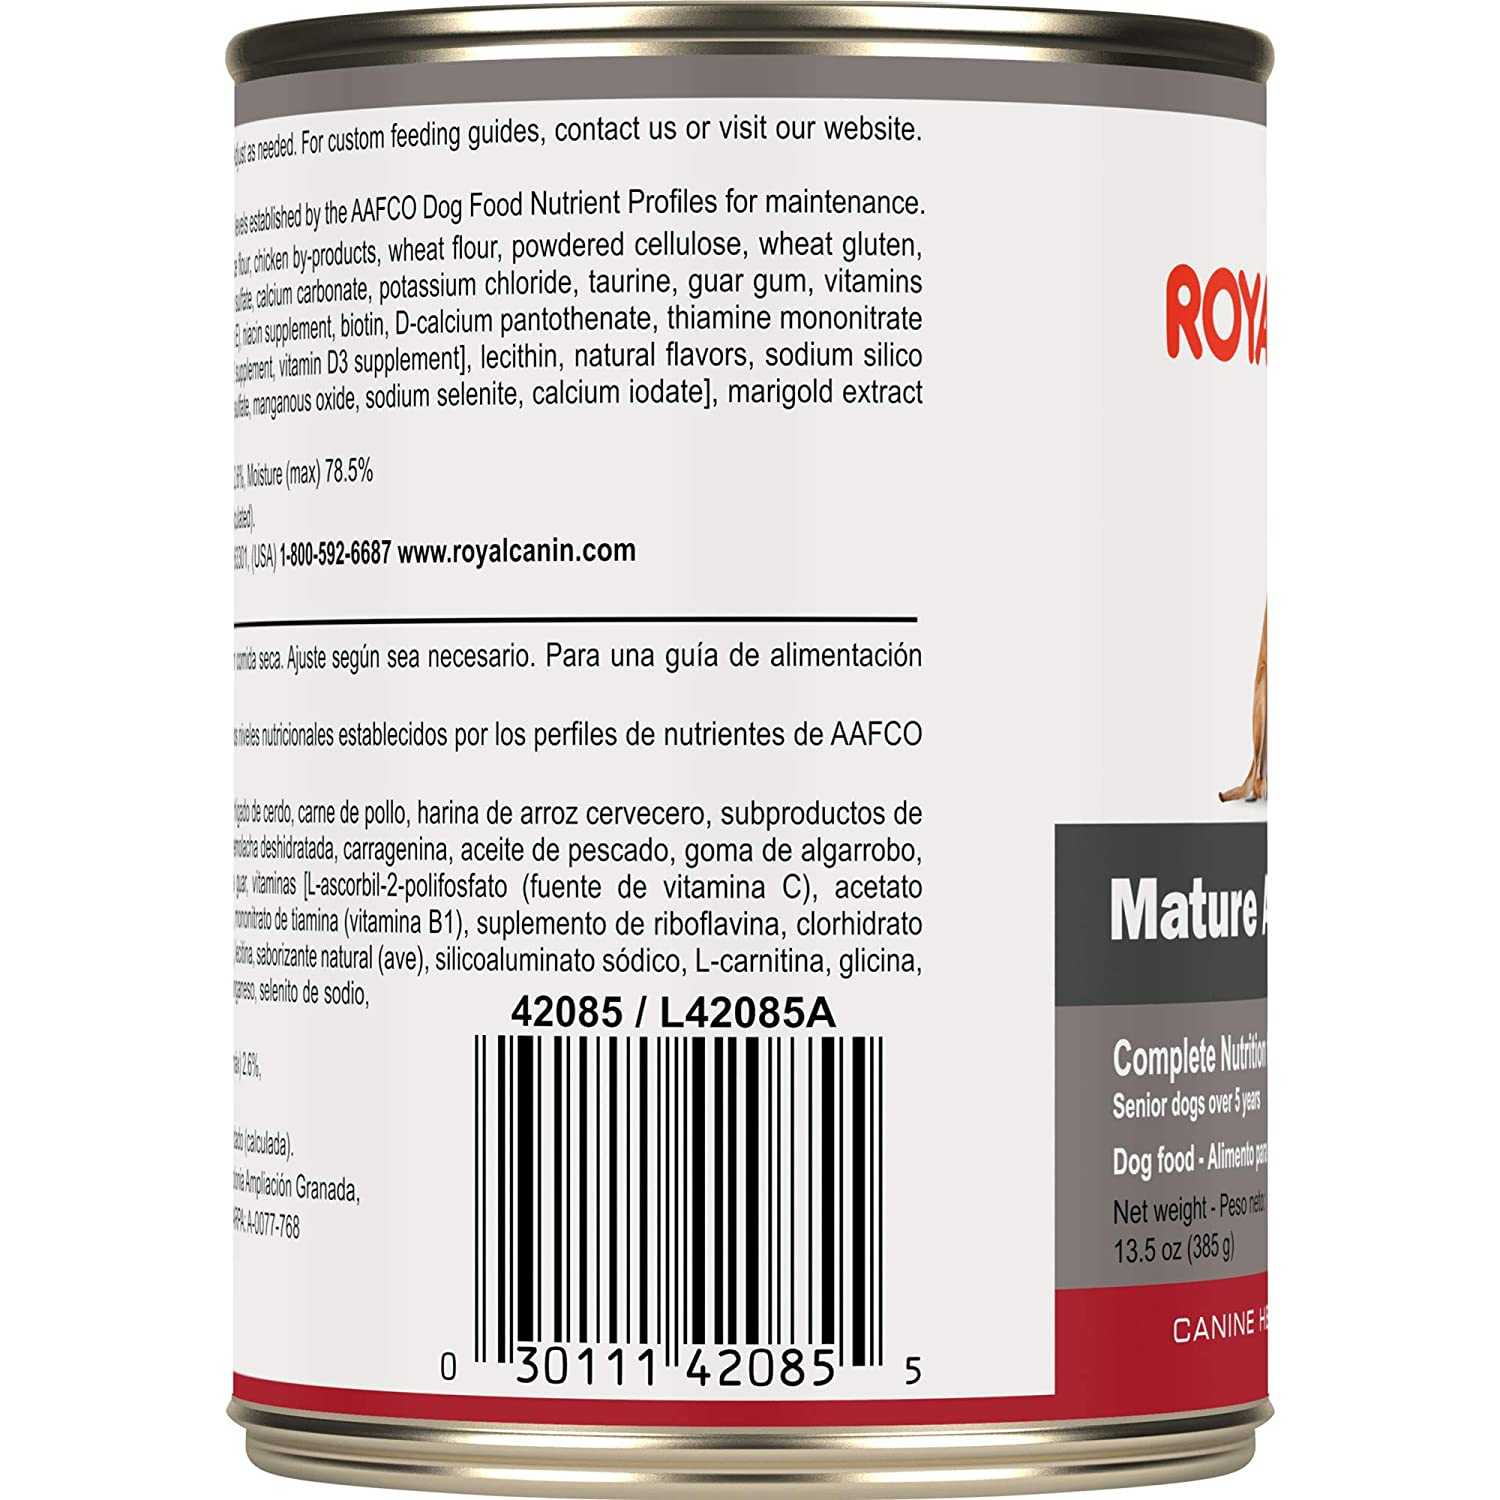 Royal Canin Canine Health Nutrition Mature Adult In Gel Canned Dog Food (Case Of 12/1), 13.5 Oz: Pet Supplies: Amazon.com